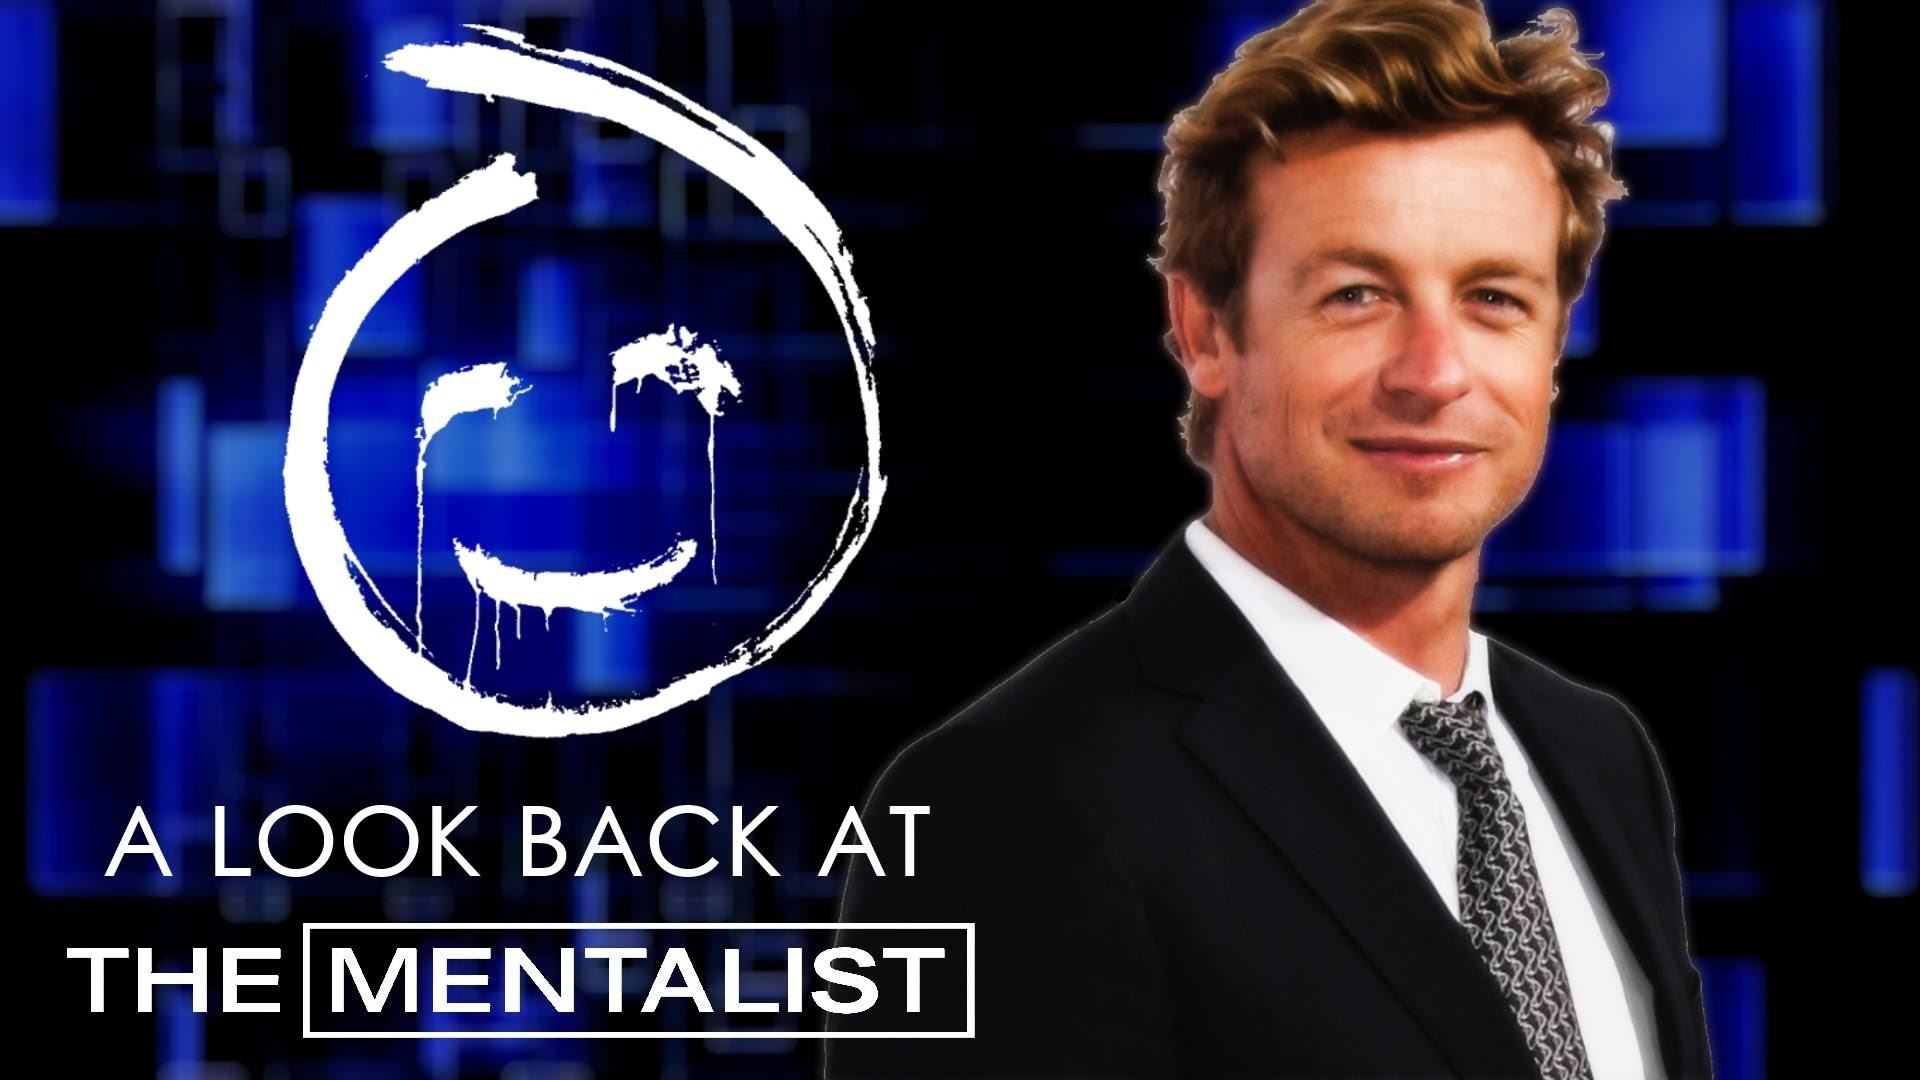 1920x1080 A LOOK BACK AT THE MENTALIST - MARVIN WASSEN